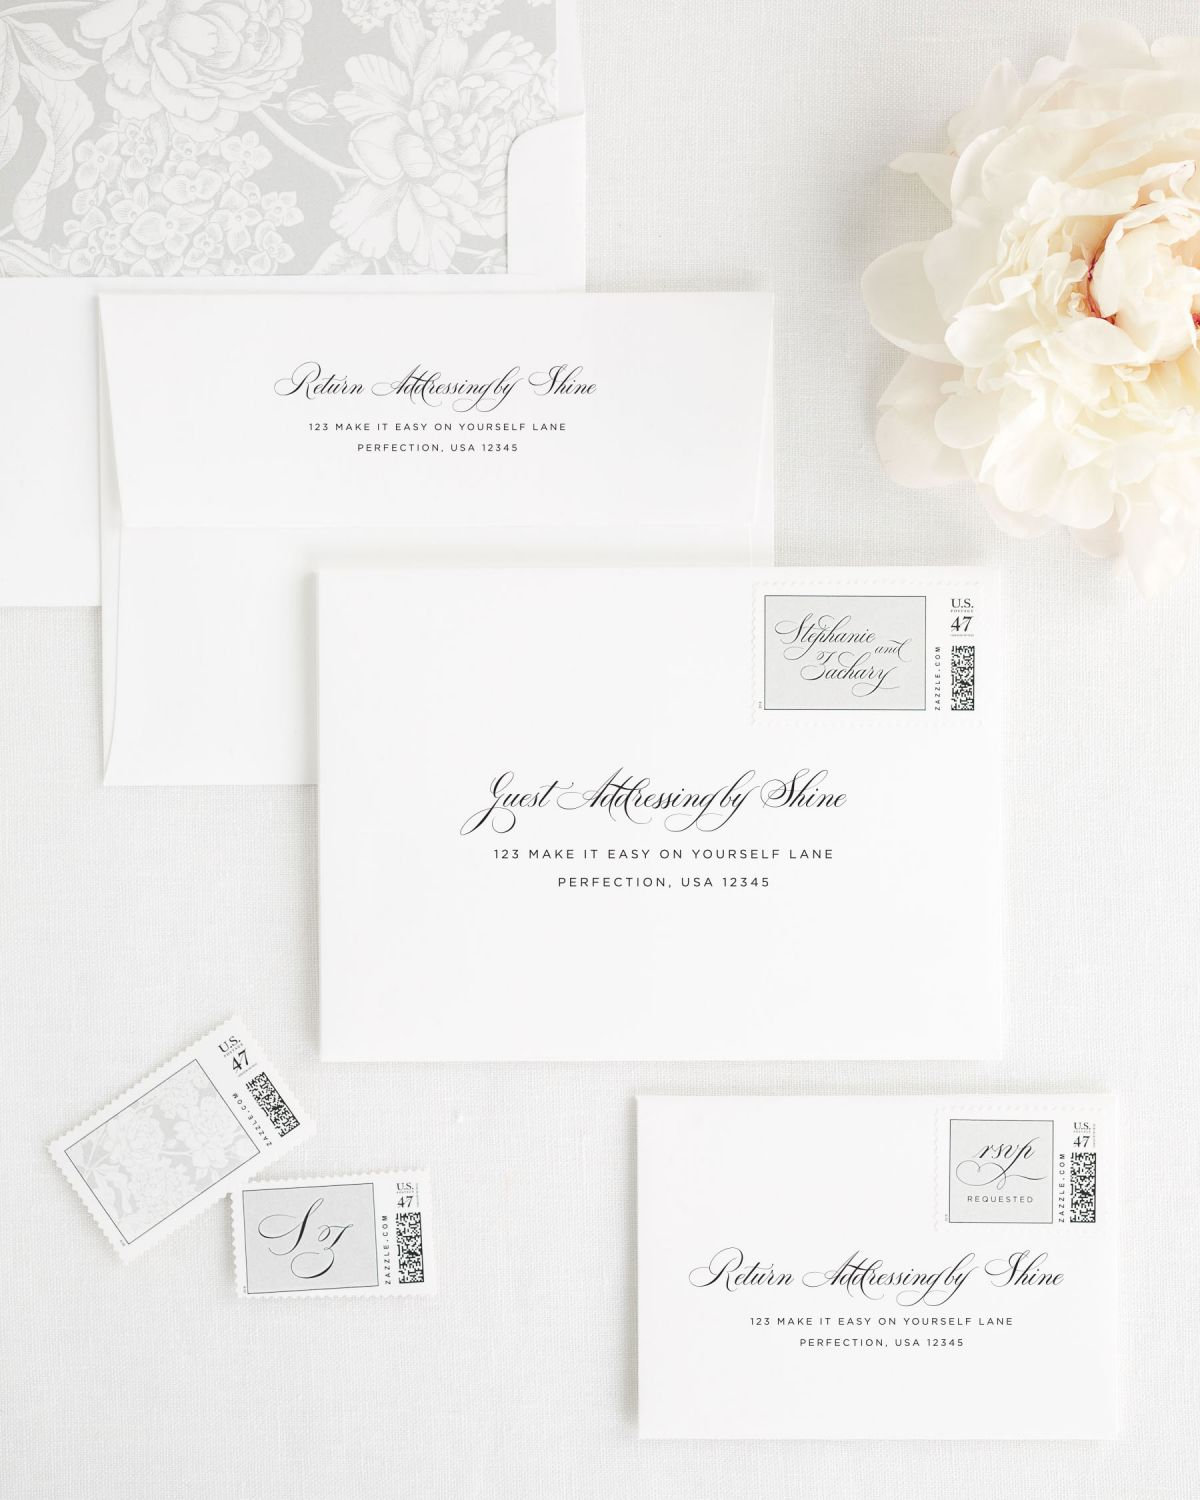 Delicate Elegance Wedding Invitations - Wedding Invitations by Shine